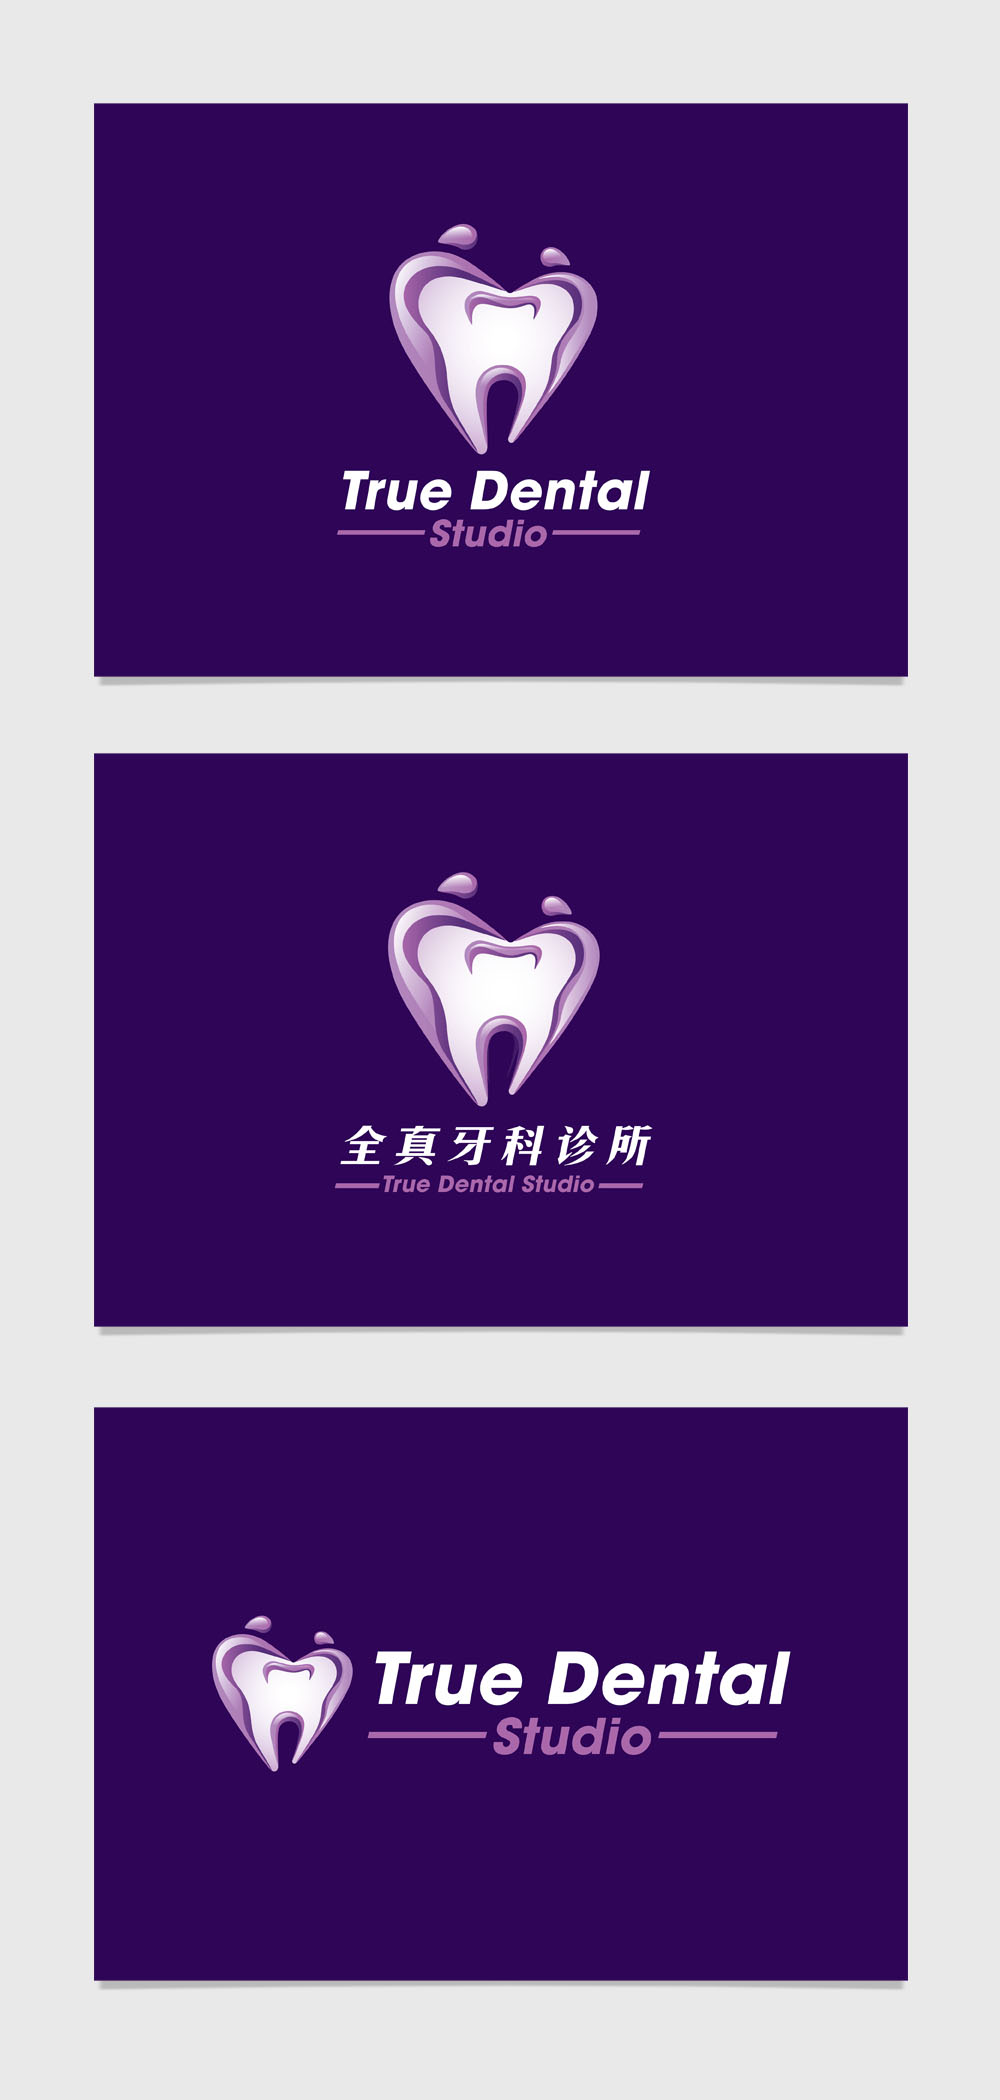 True Dental Brand Design